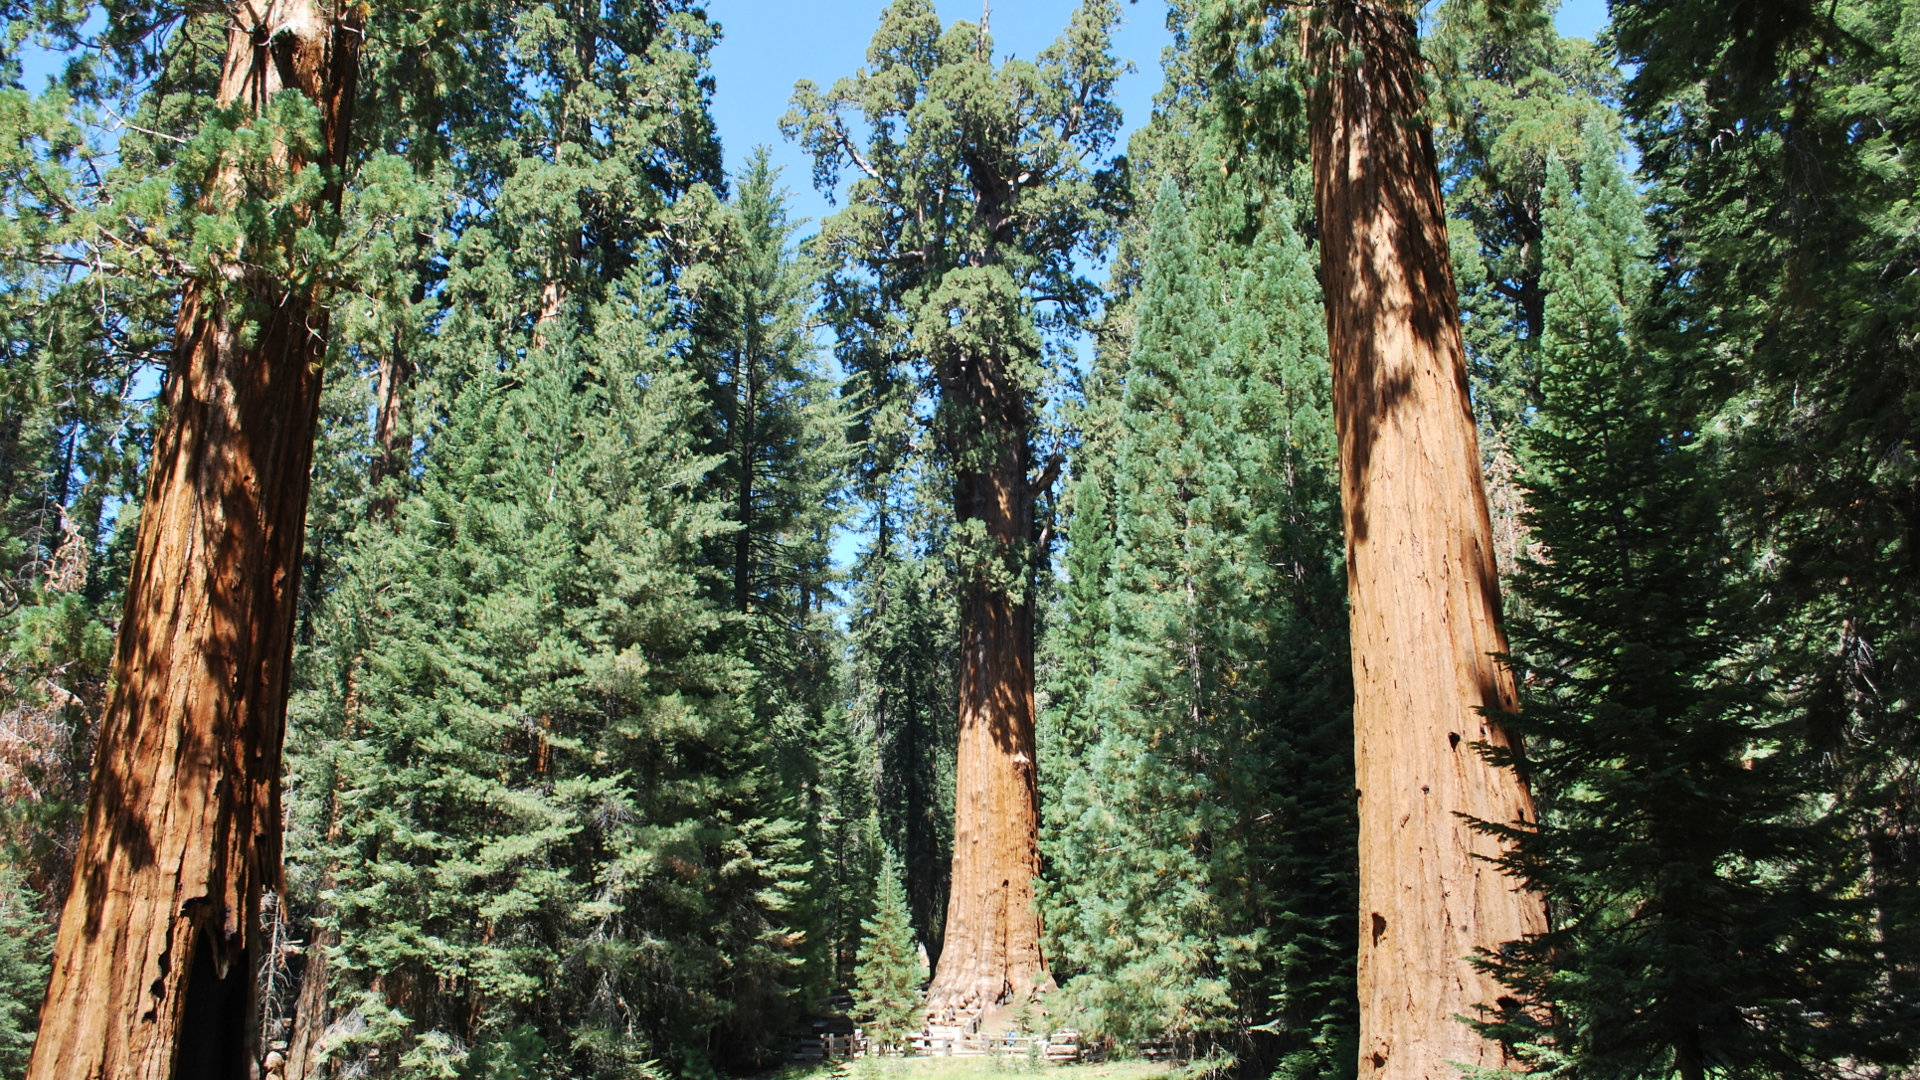 Giant Sequoias Struggle with Drought | QUEST | KQED Science